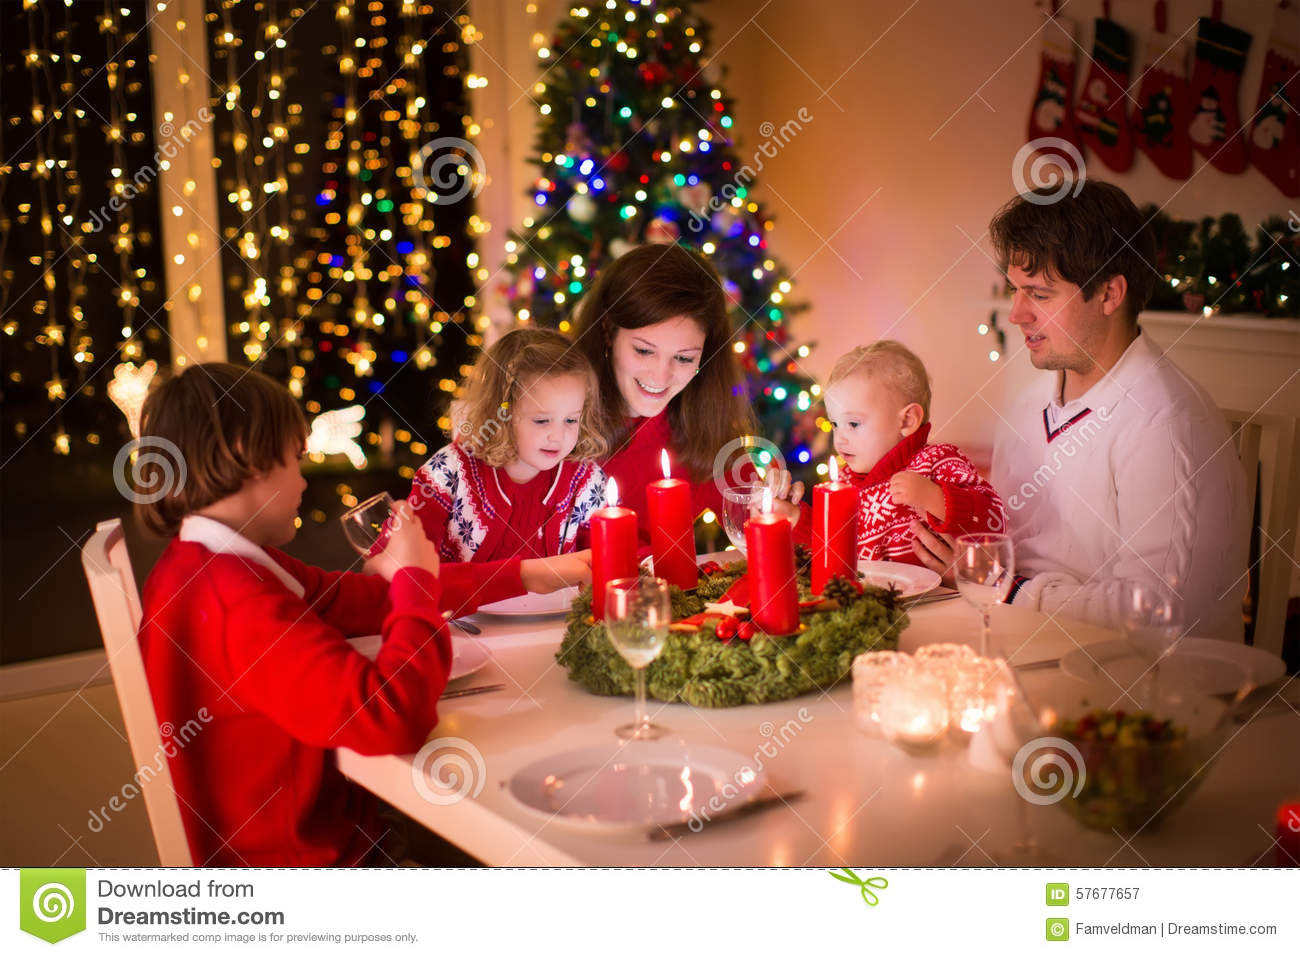 Family With Children At Christmas Dinner Stock Photo - Image: 57677657